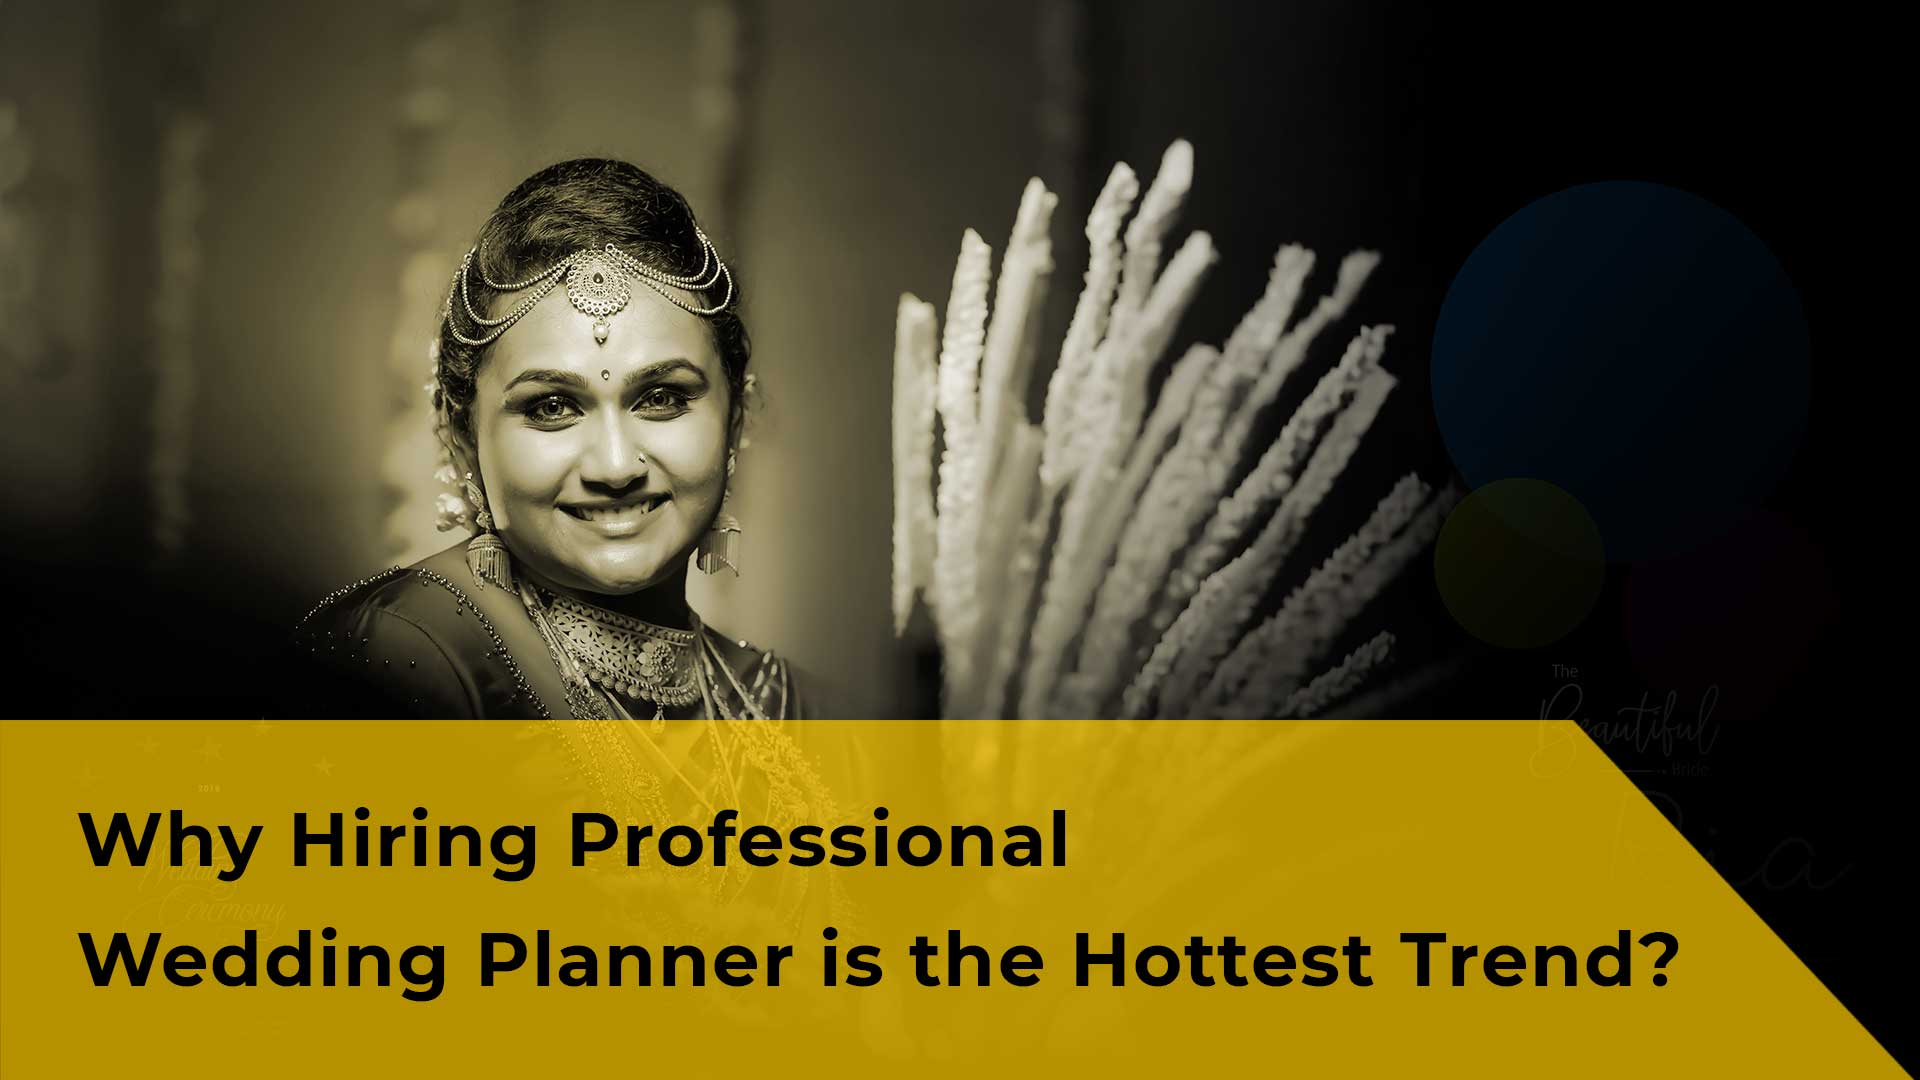 Why Hiring Professional Wedding Planner is the Hottest Trend?